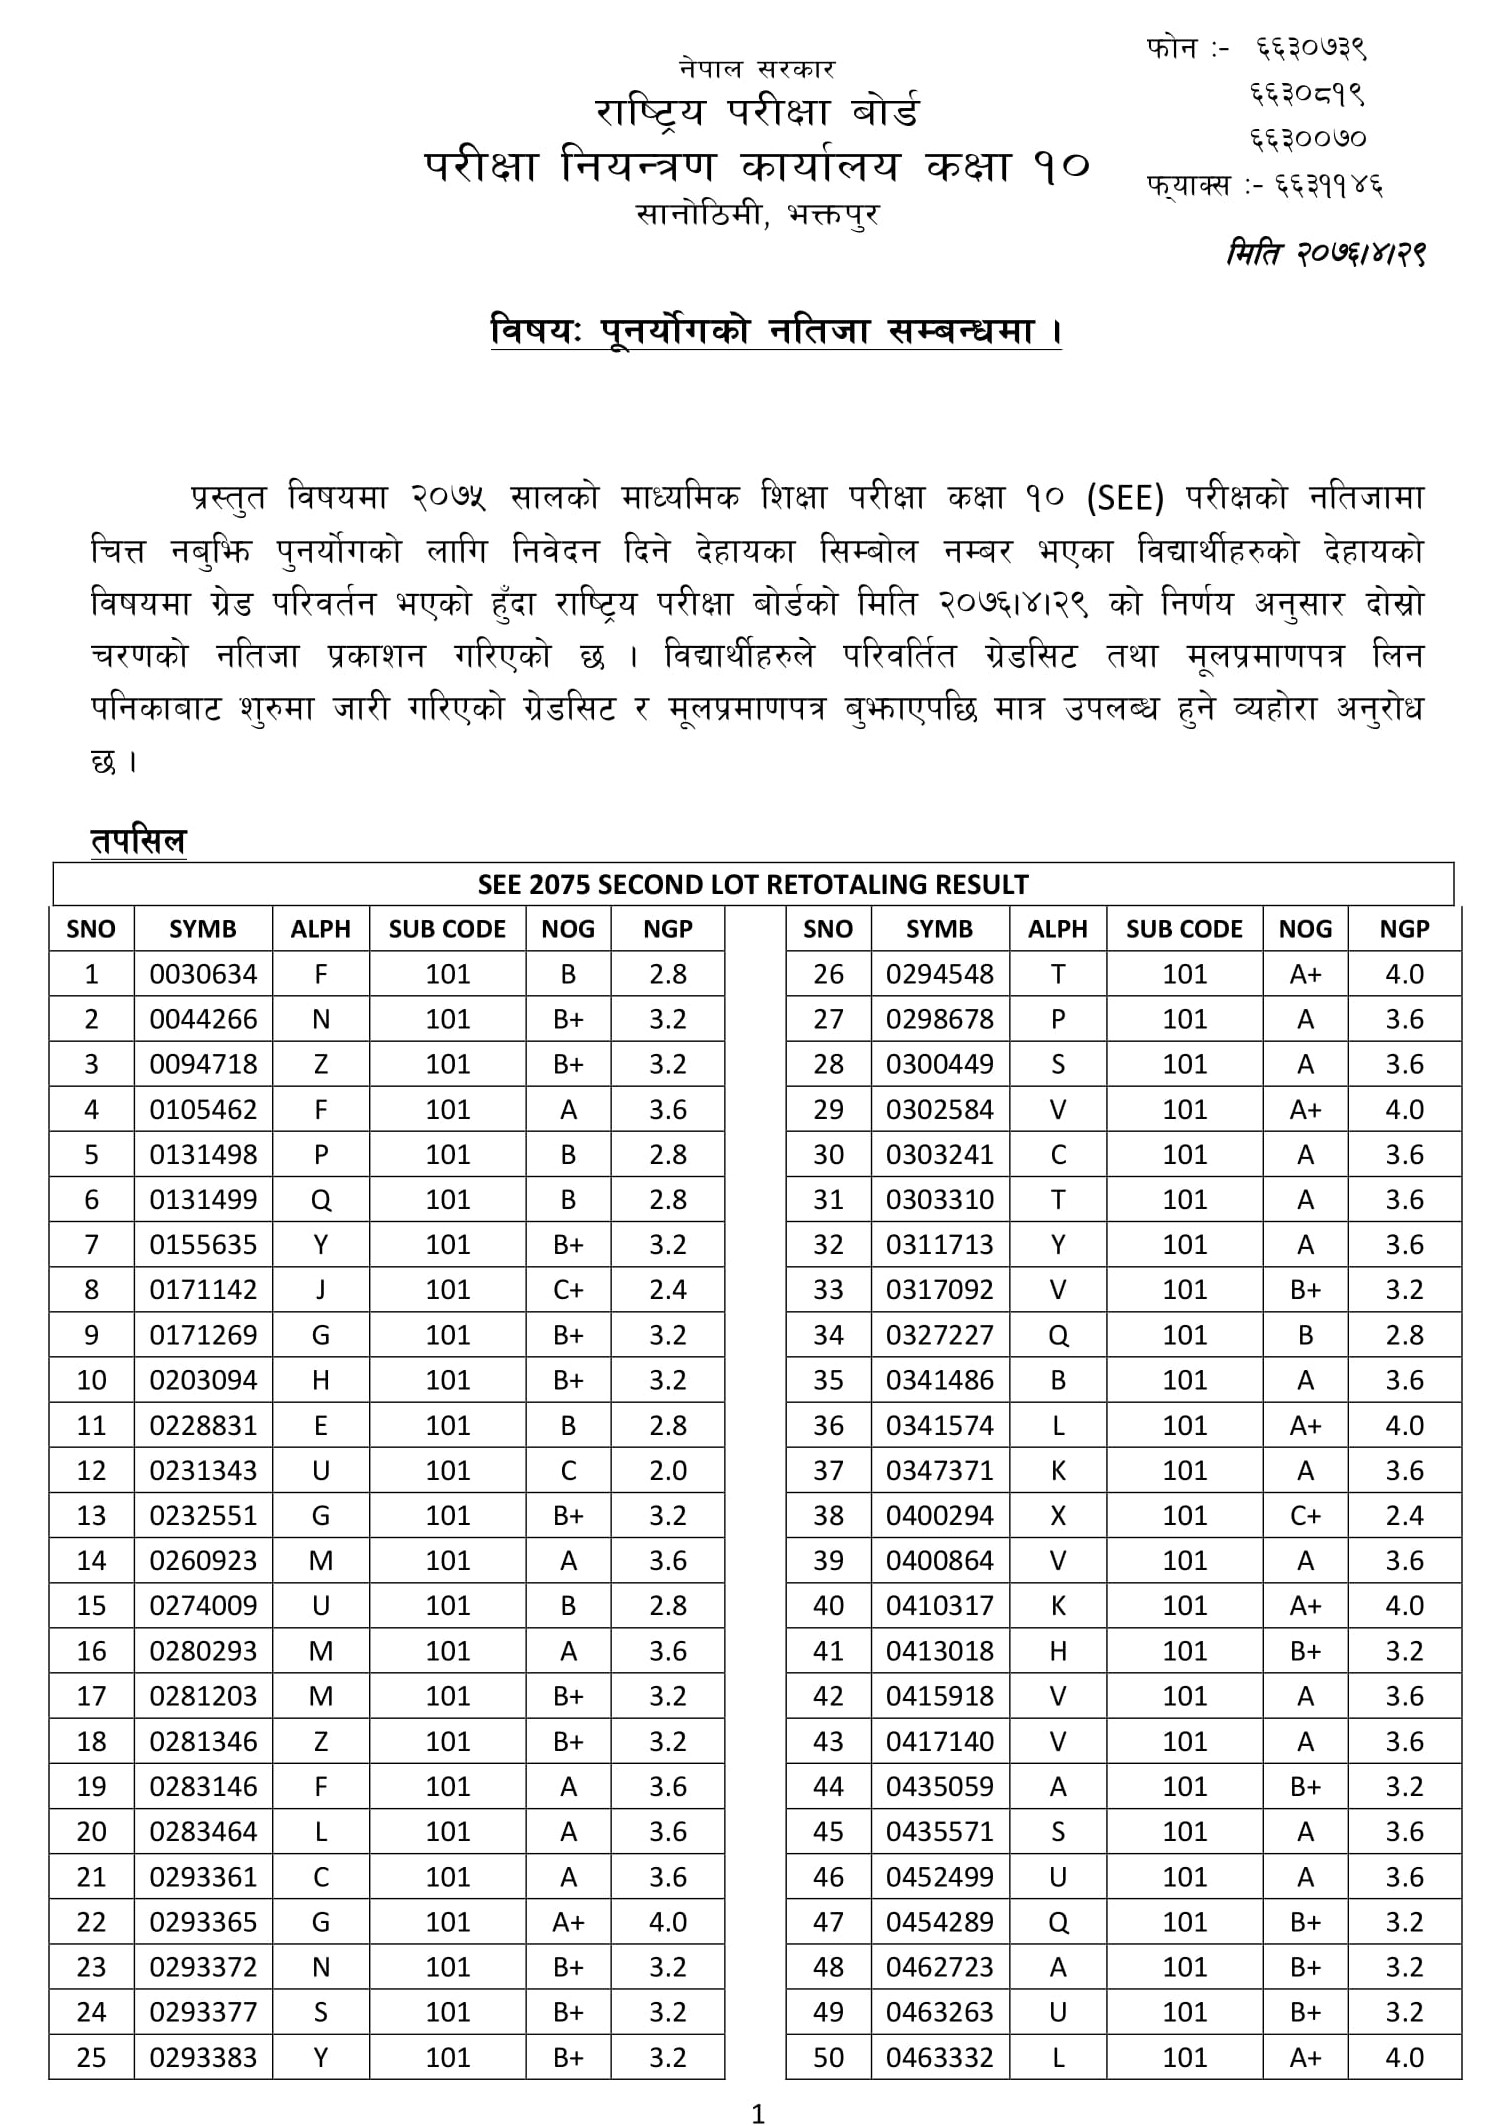 SEE Retotaling Result Published of academic year 2075